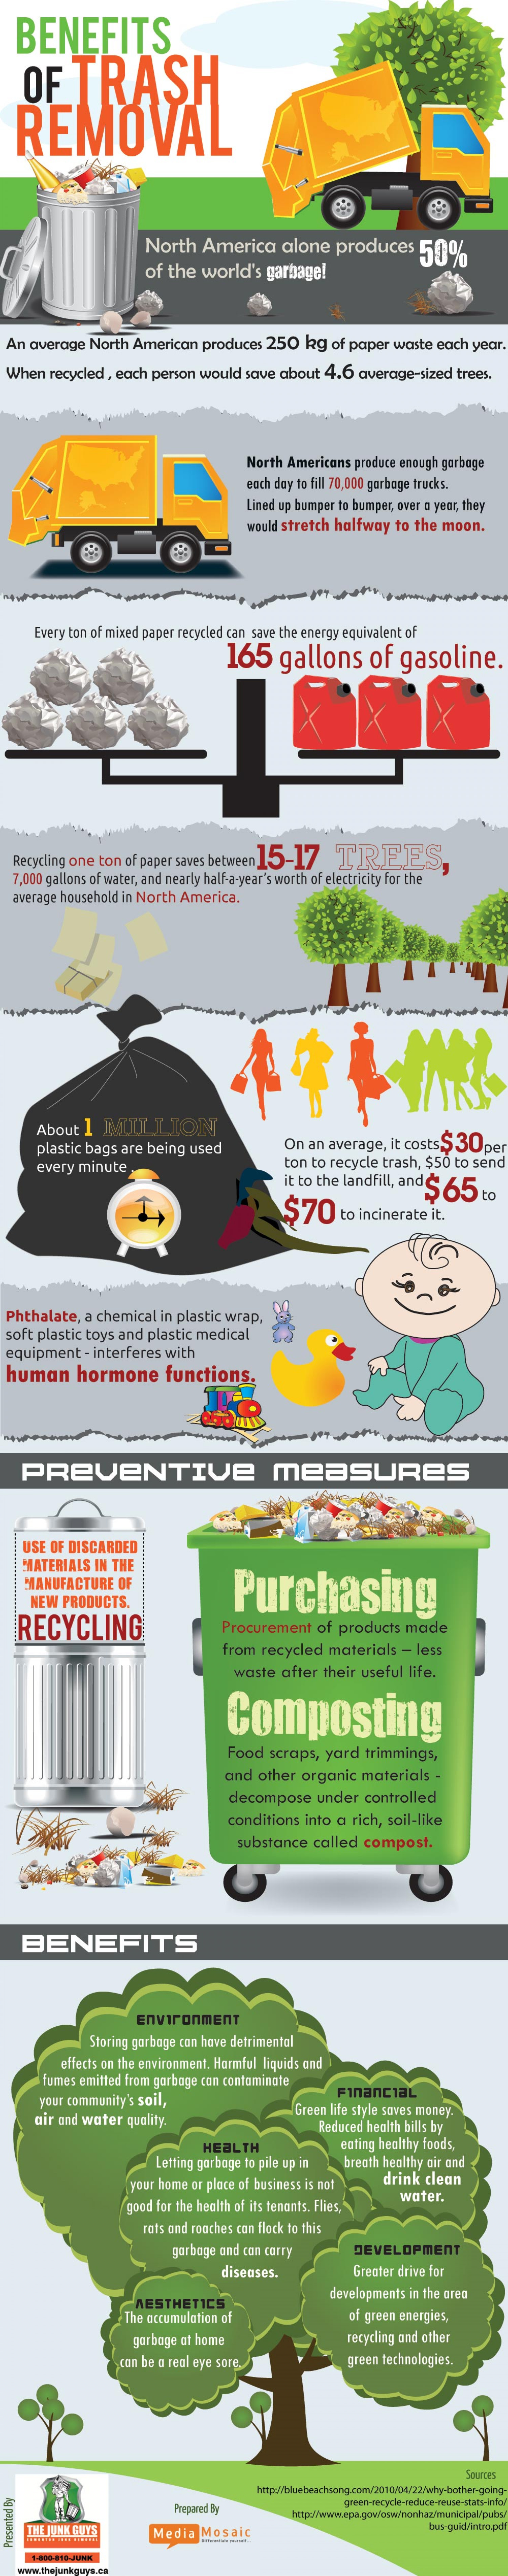 Benefits of Trash Removal Infographic